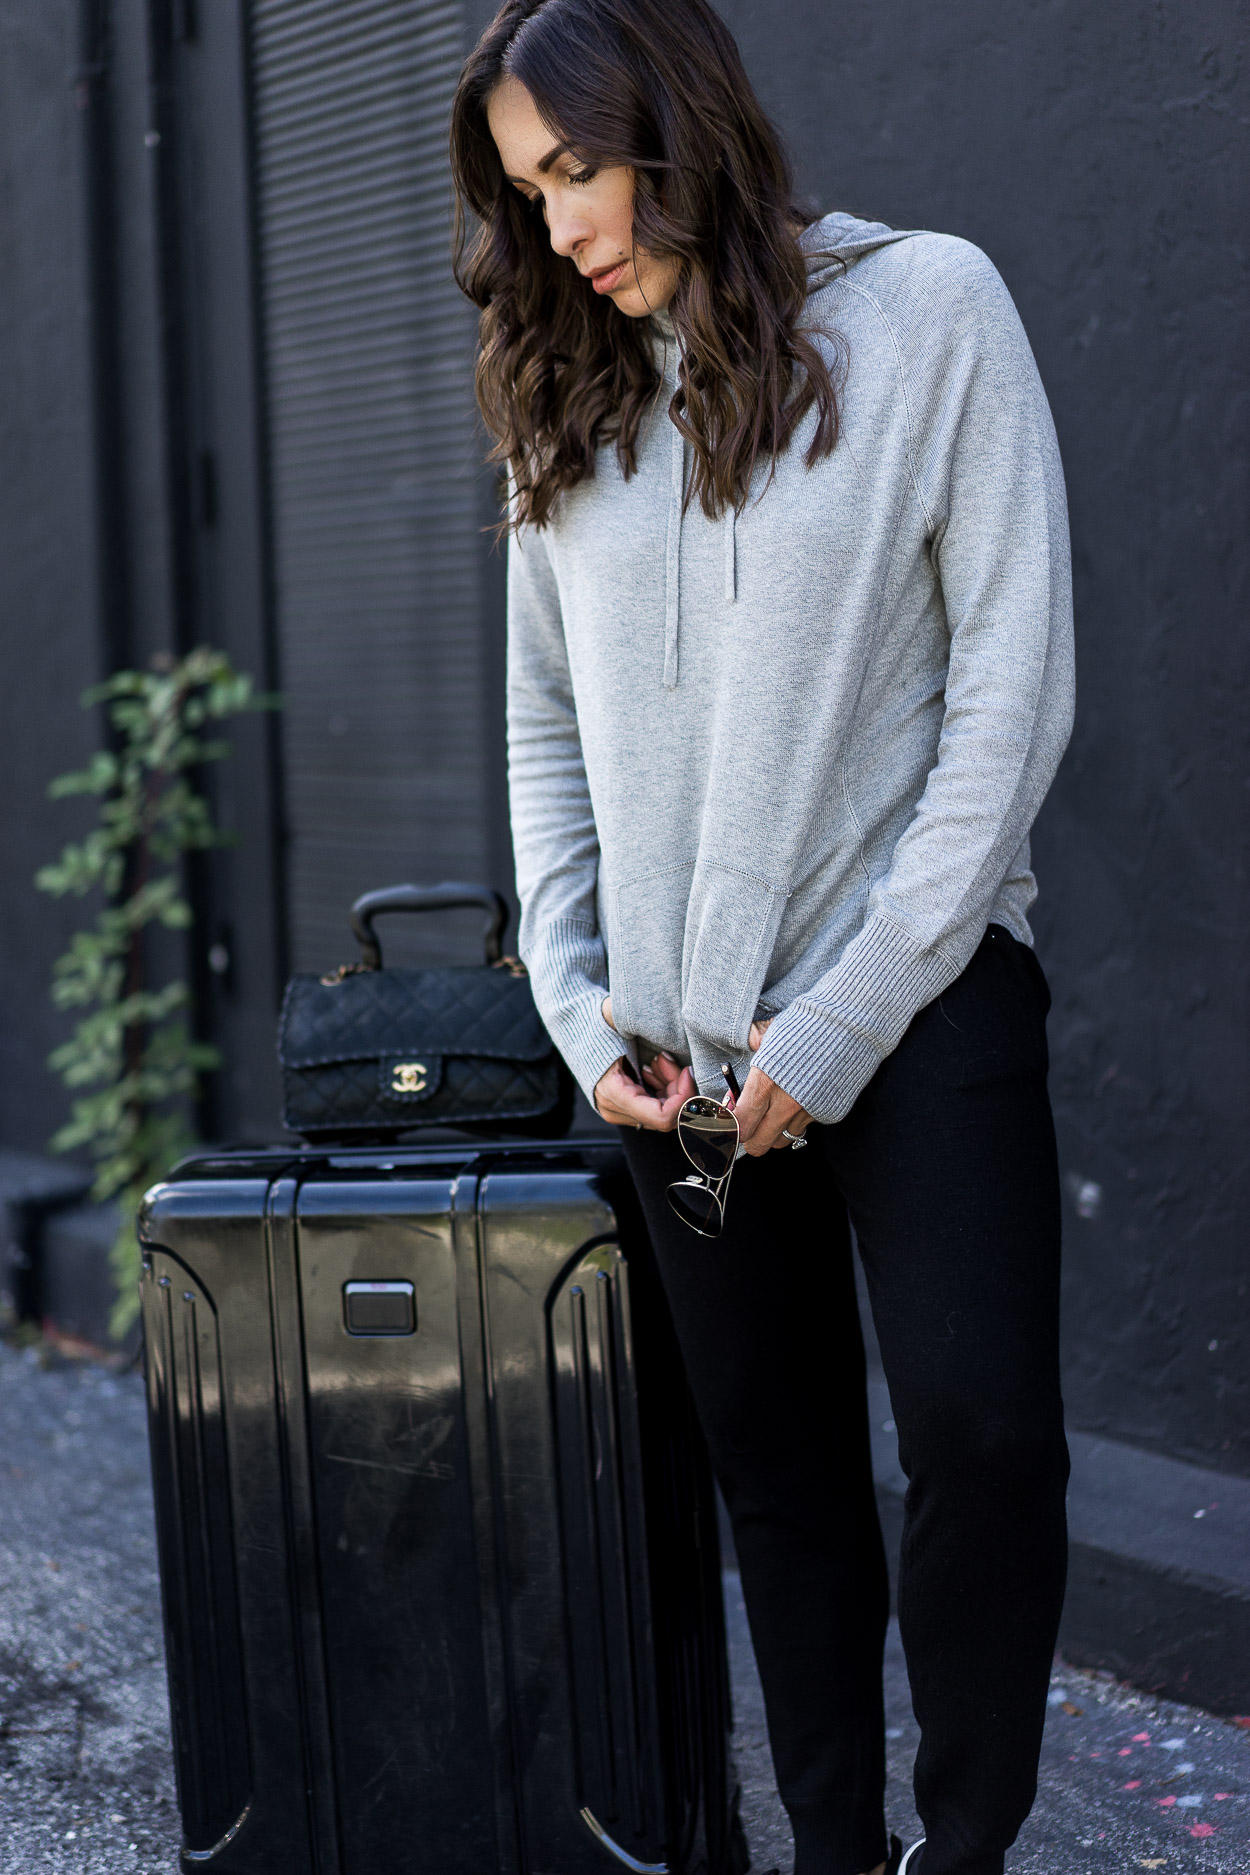 Leimere cashmere joggers are the ultimate travel style when paired with a cashmere hoodie - worn by blogger Amanda of A Glam Lifestyle